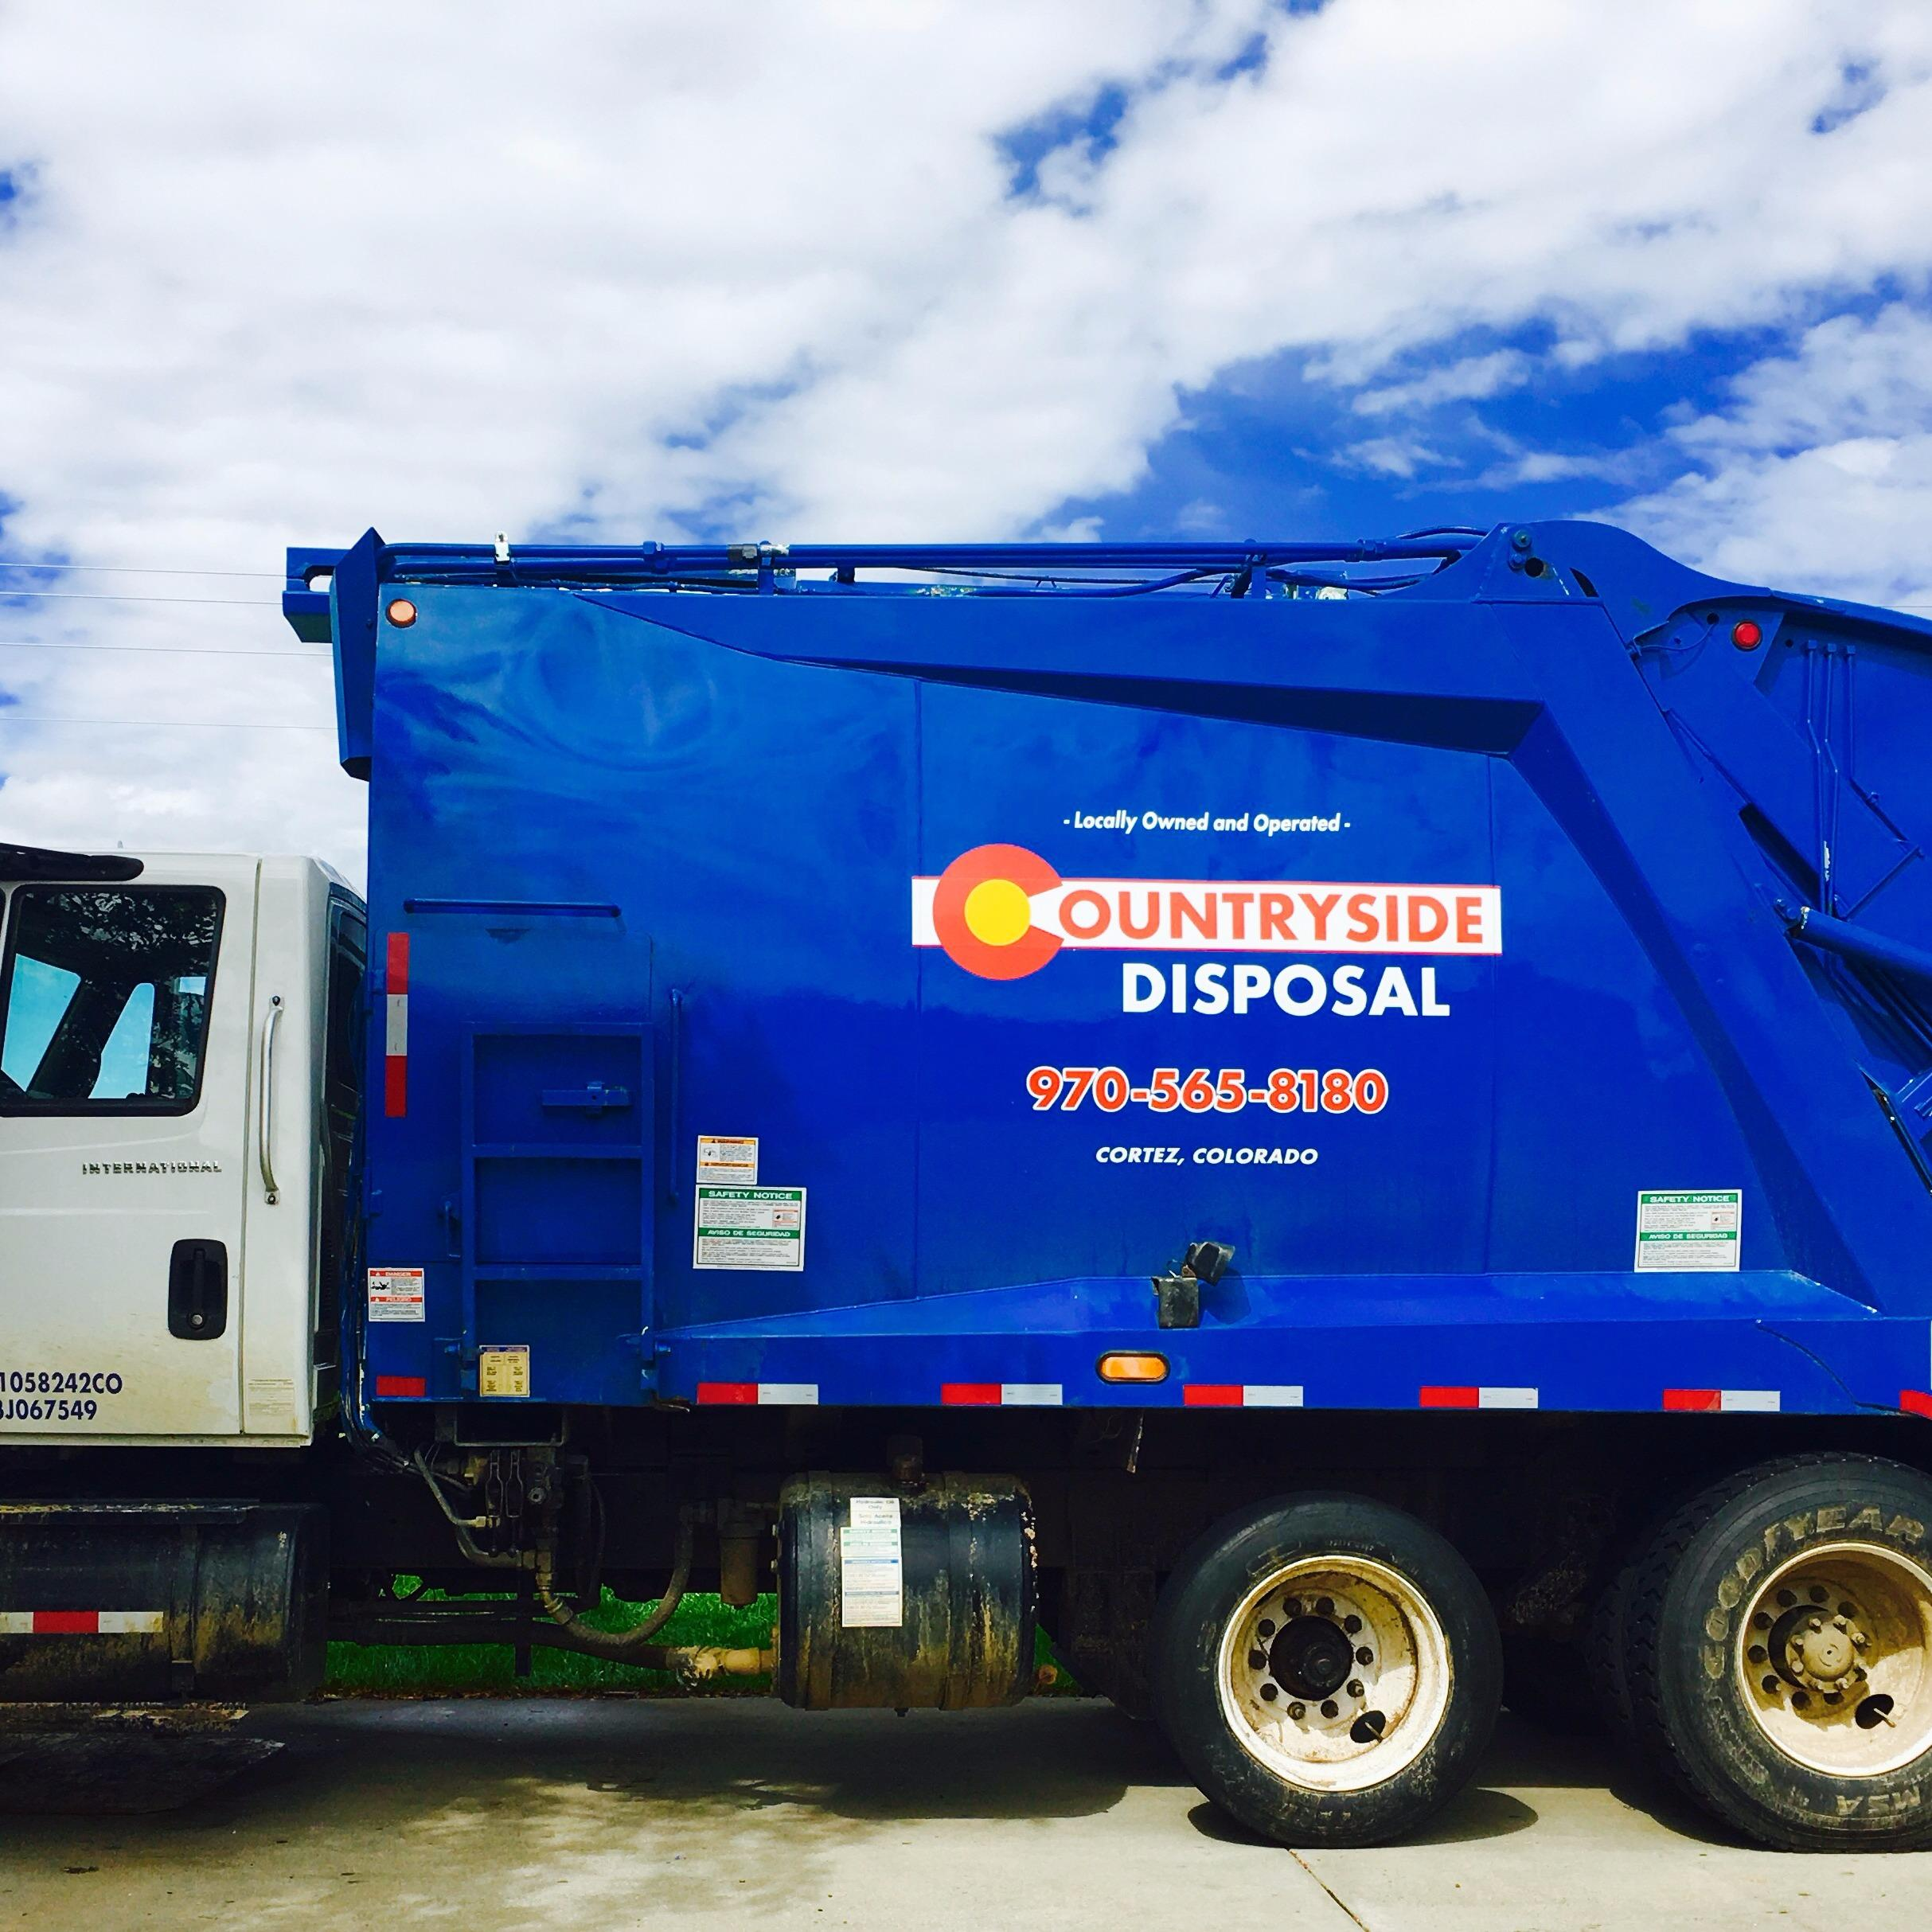 Countryside Disposal - Cortez, CO - Debris & Waste Removal